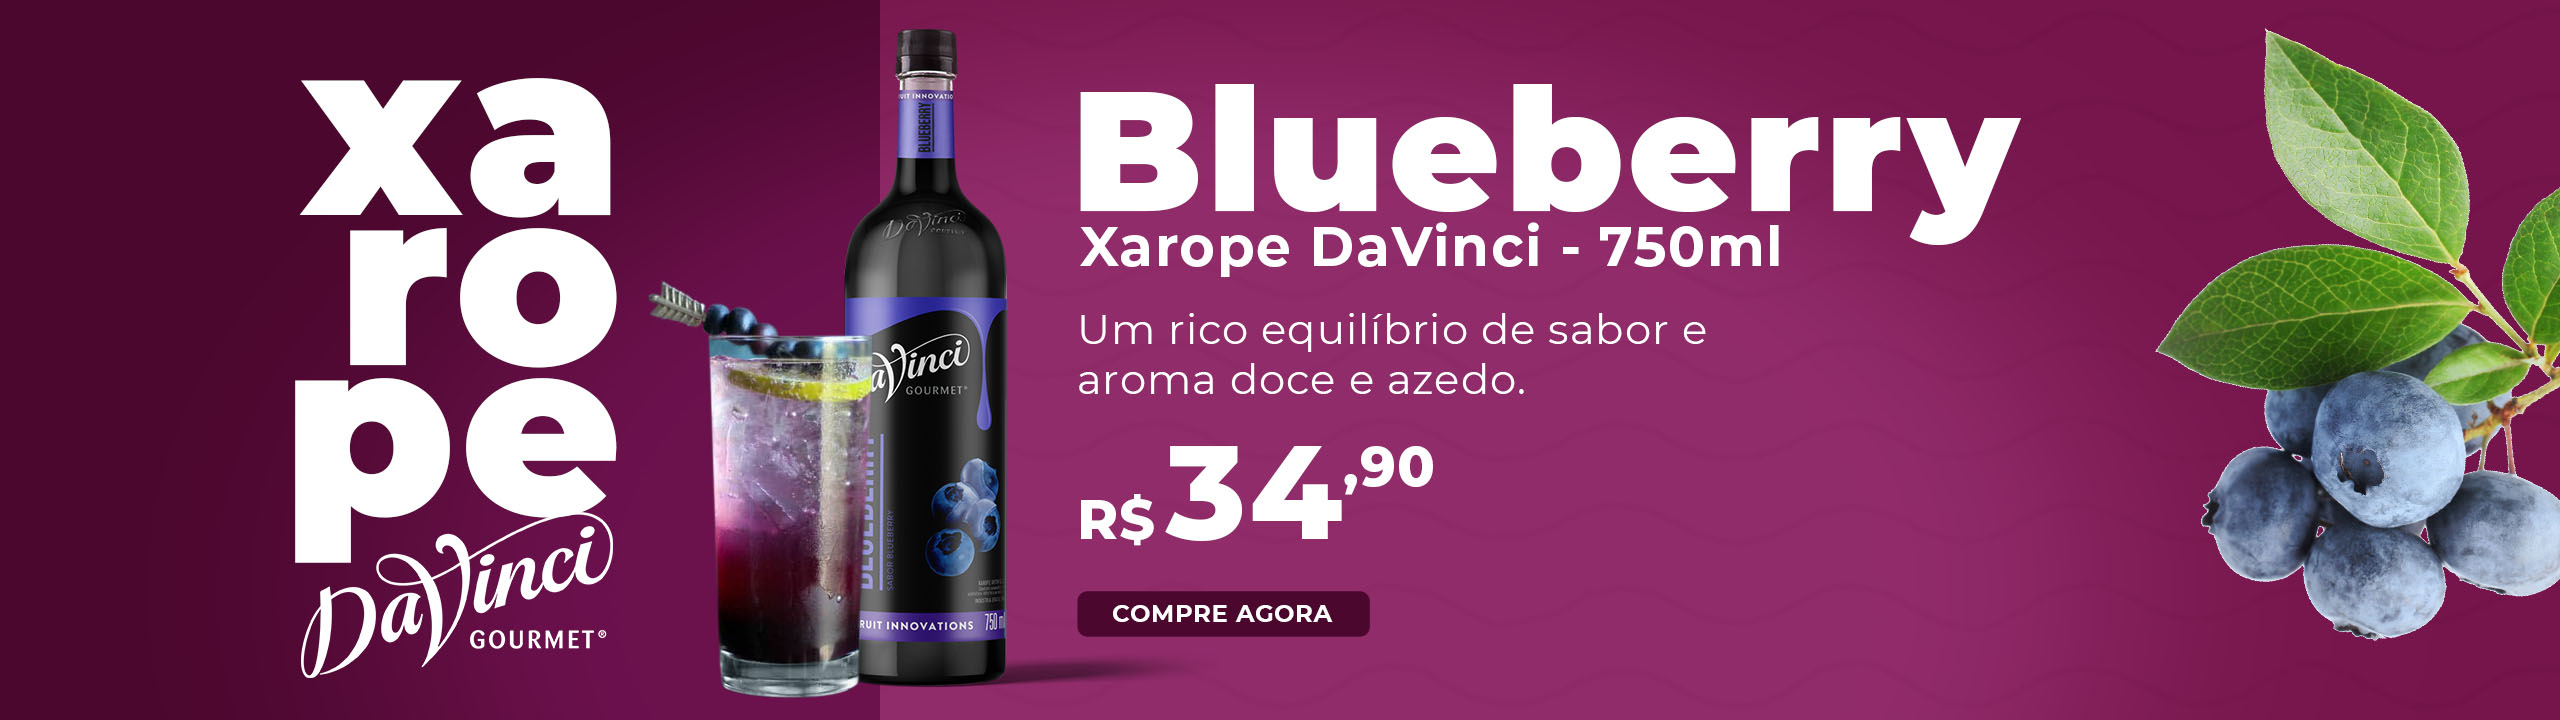 Xarope para Drinks DaVinci - Blueberry